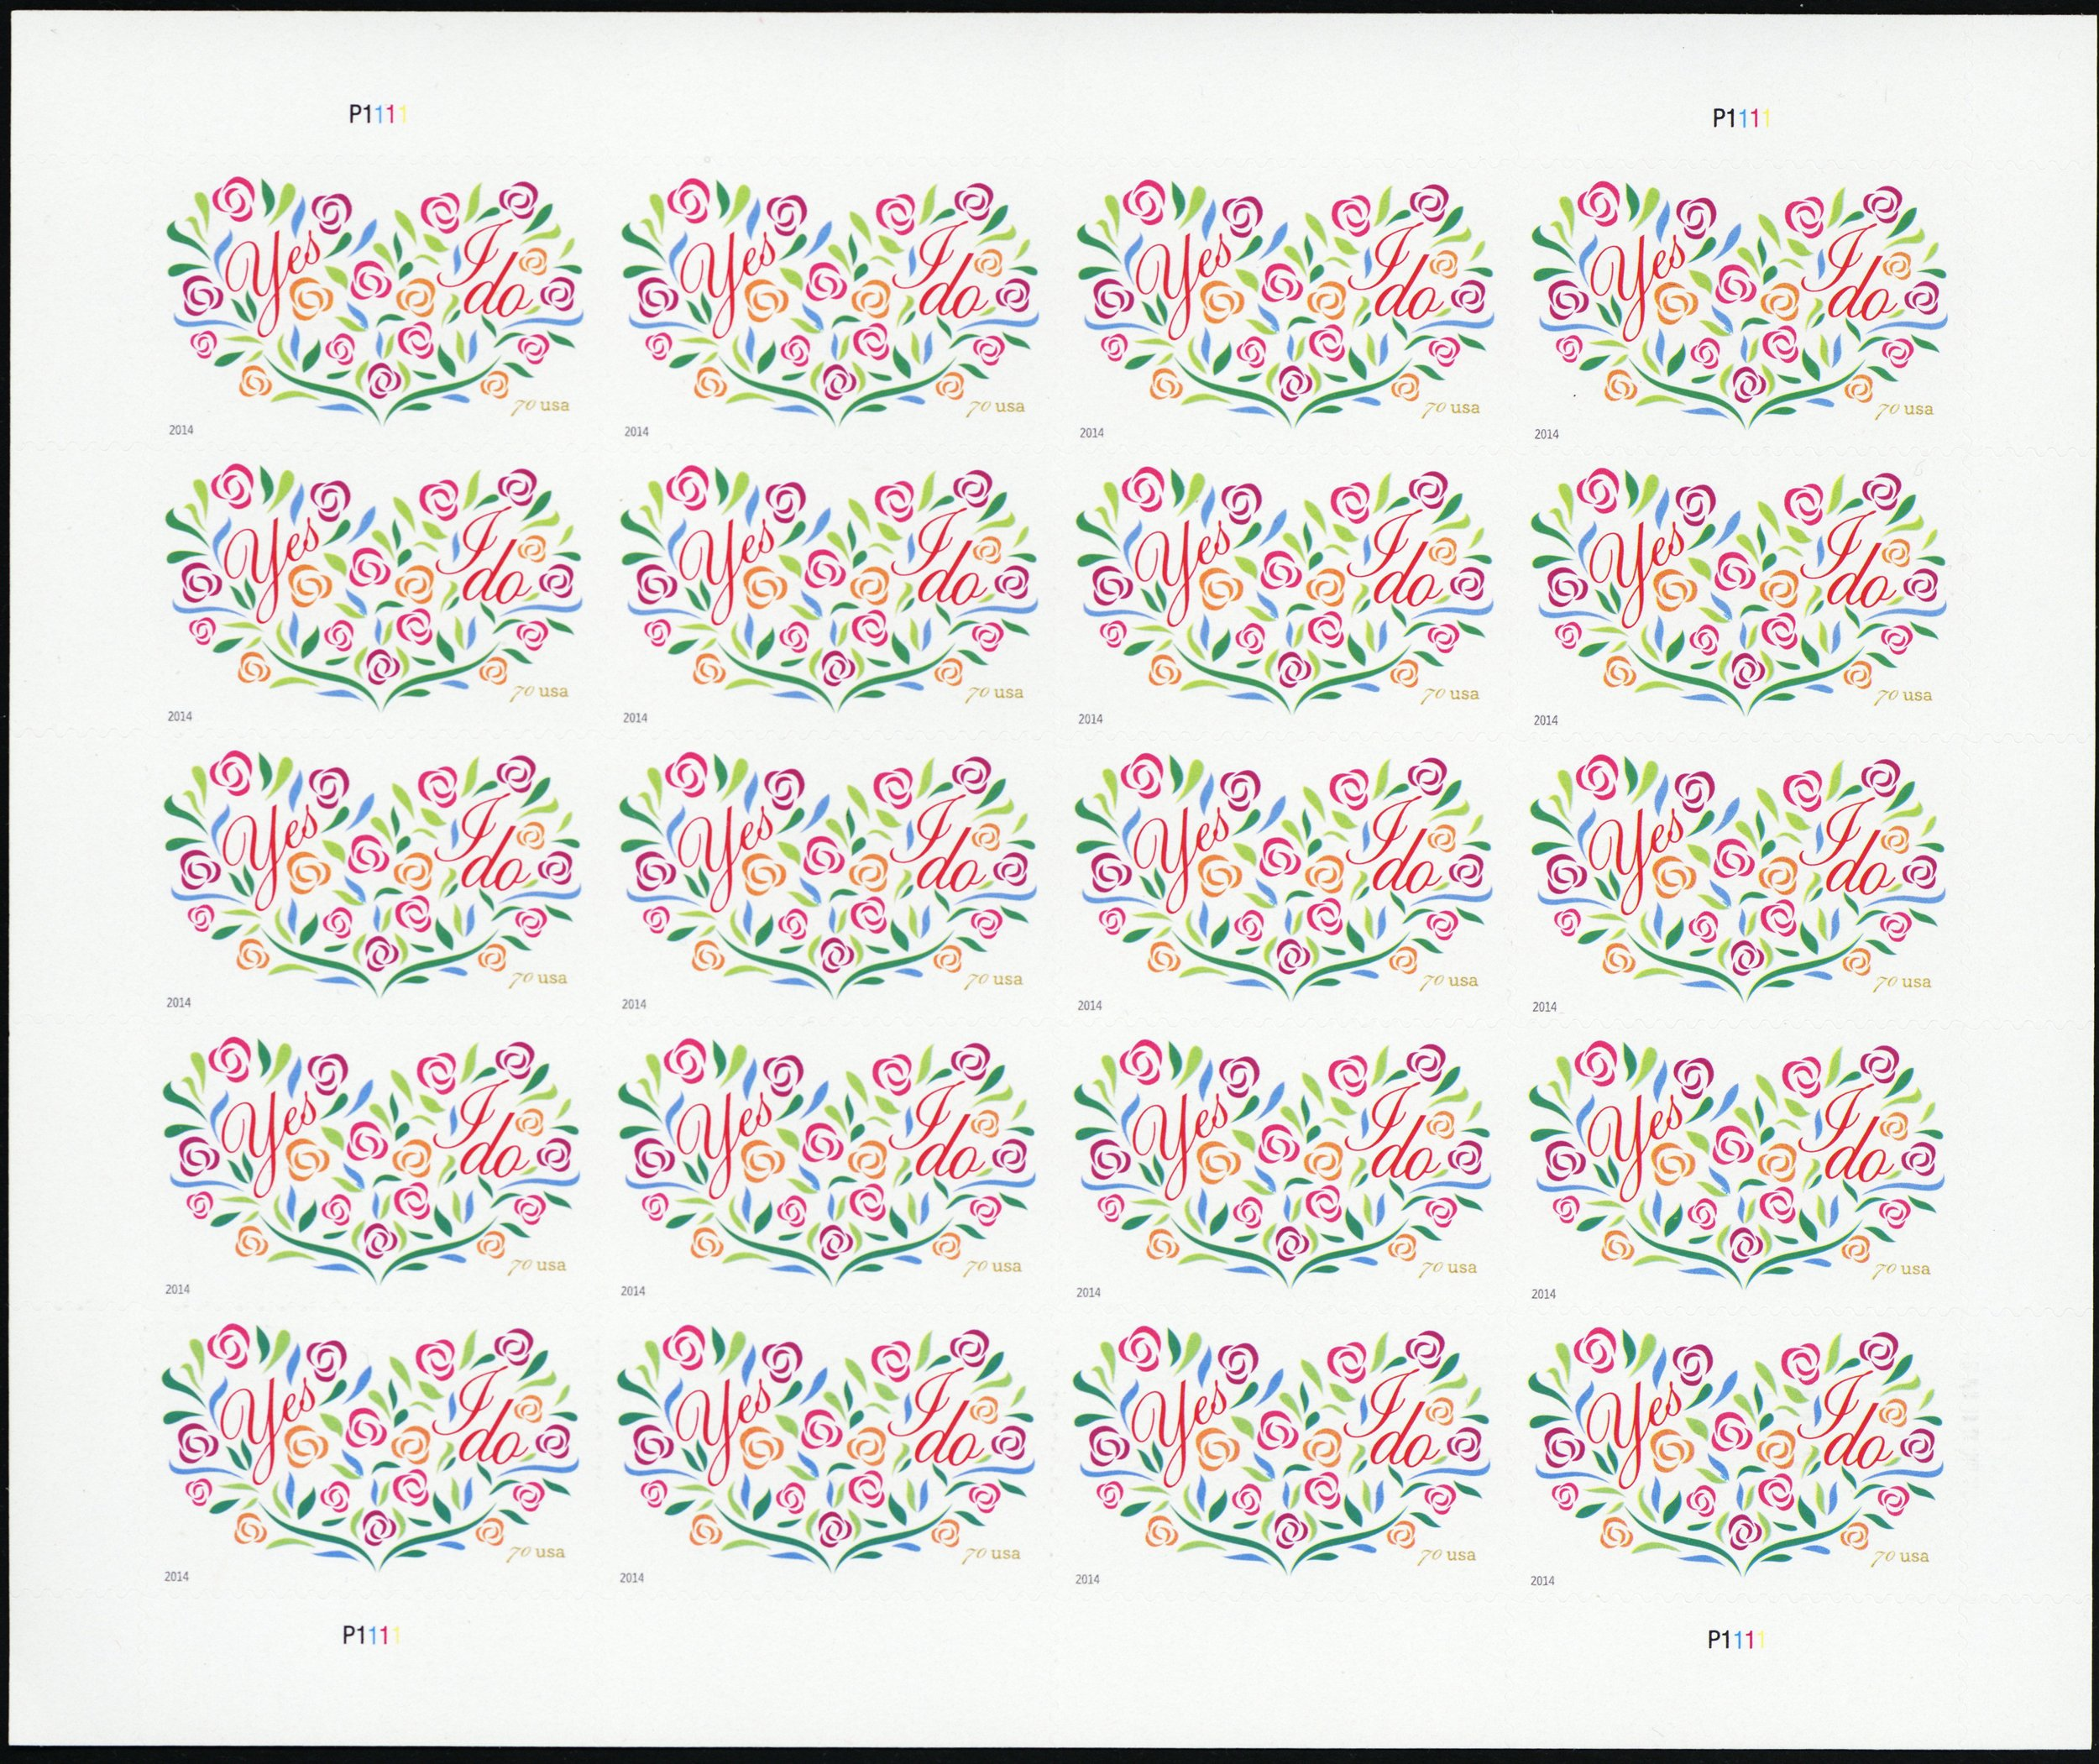 2014 Yes I Do 70 Cent 2 Ounce Rate Sheet 20 Twenty Stamps Scott 4881 By USPS